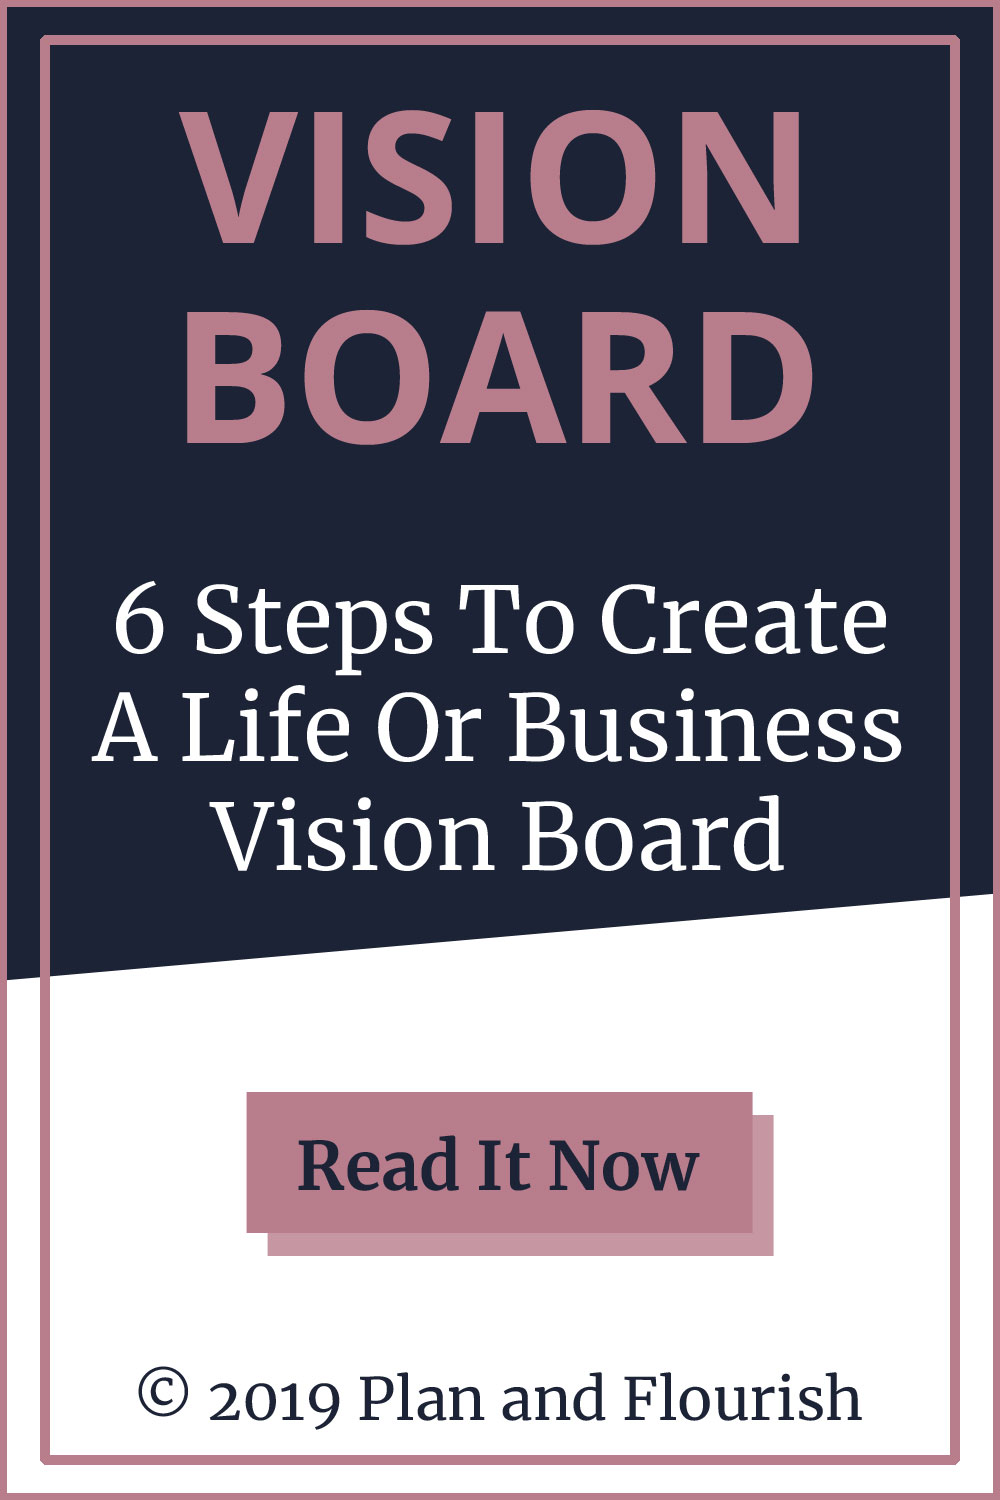 6 Steps To Create A Vision Board | Read It Now